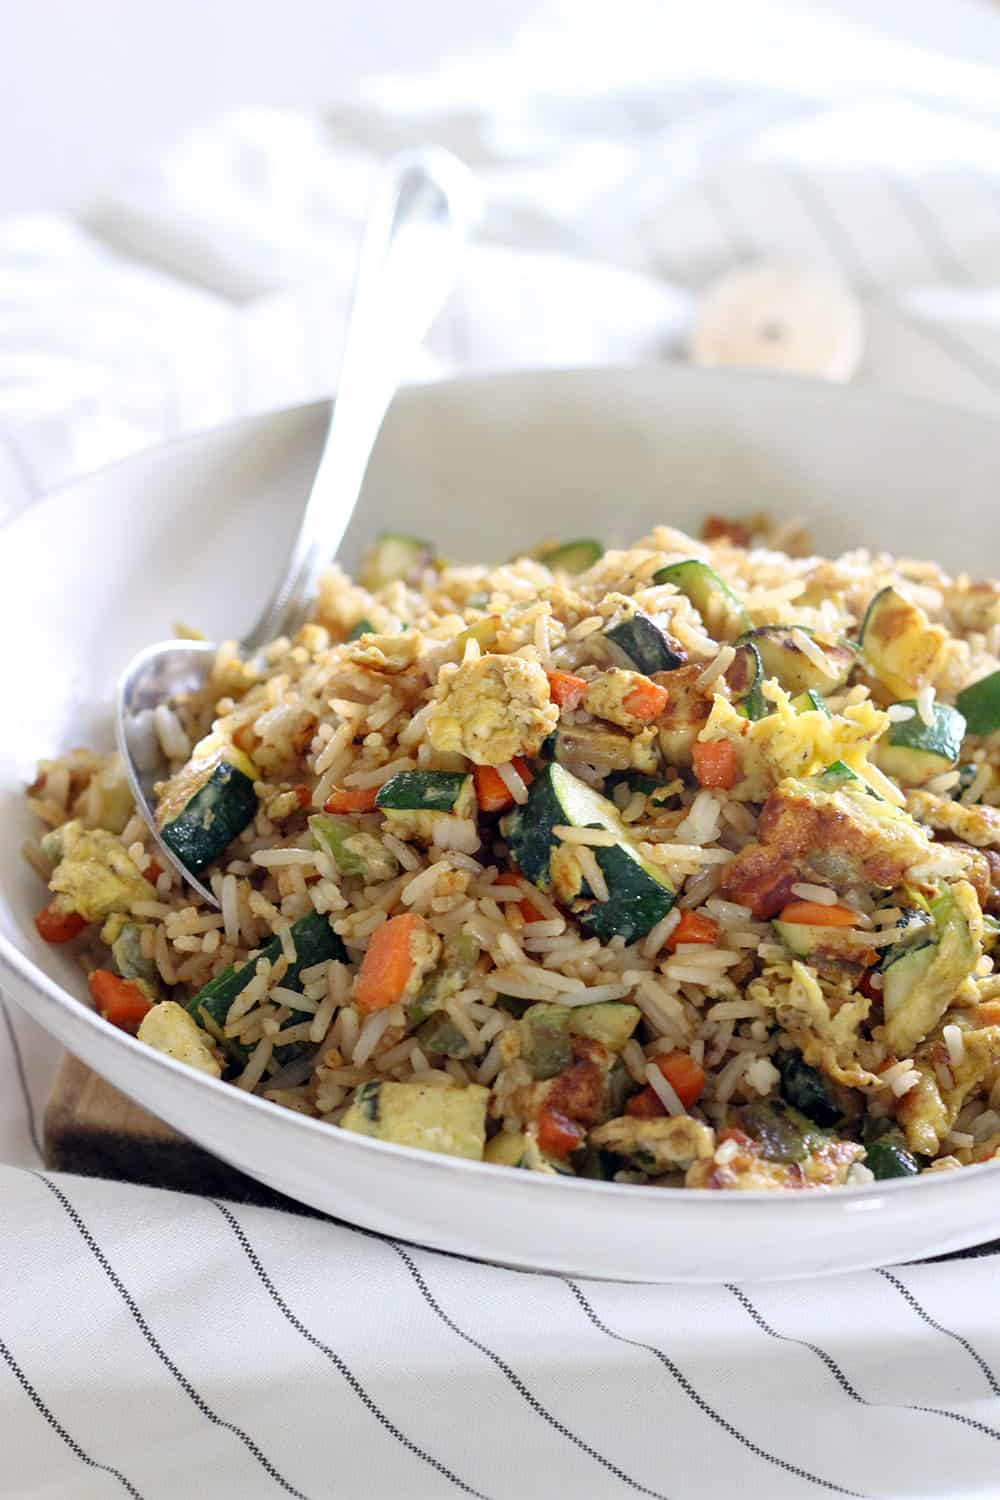 Ten minutes and six ingredients is all you need for this fresh, delicious veggie fried rice that's MUCH healthier than take-out!